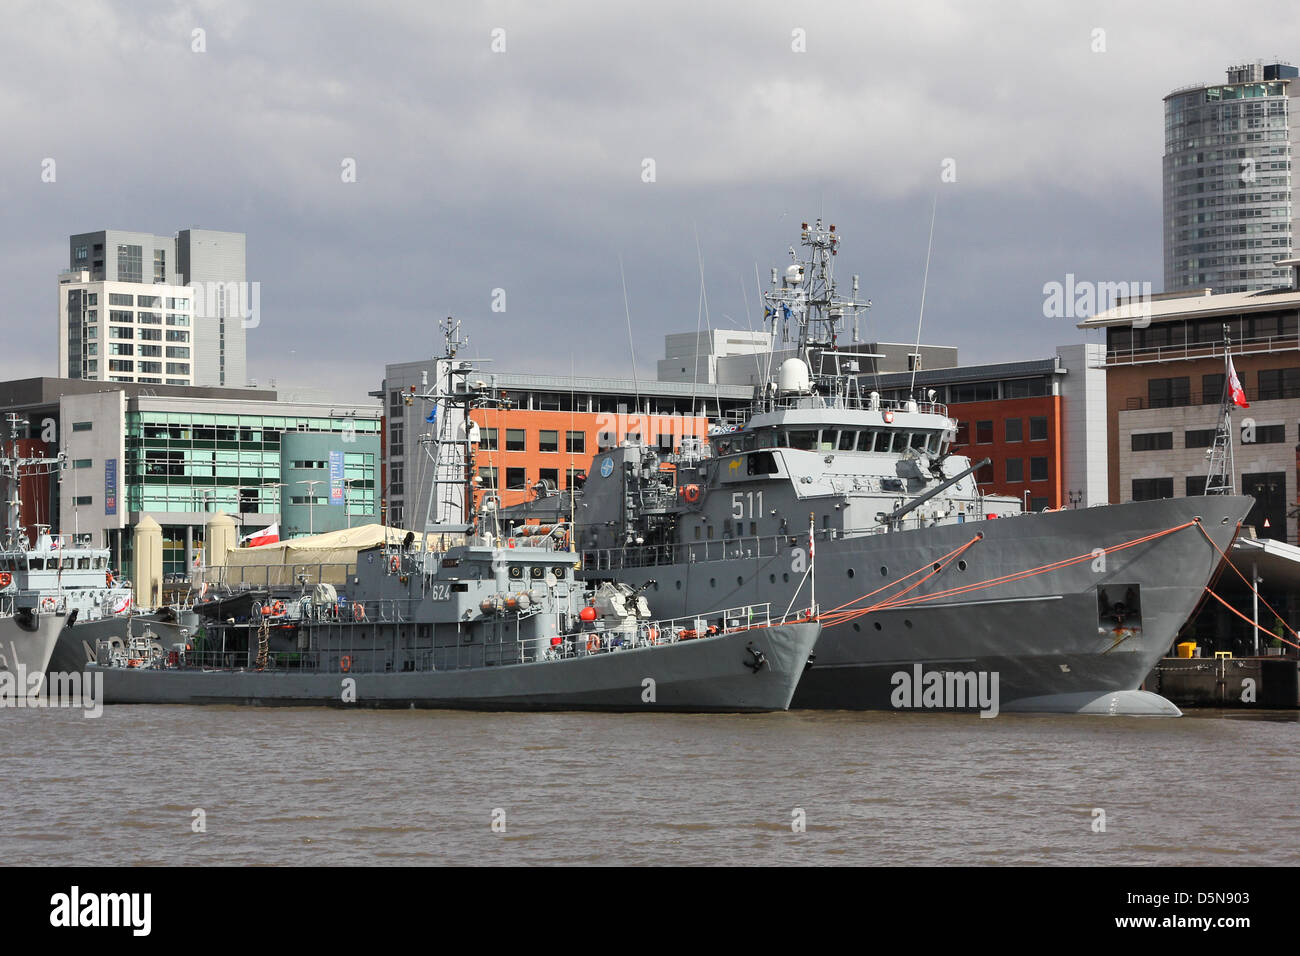 Liverpool, UK. 5th April 2013. ORP Czernicki and ORP Czajka berthed at the terminal. Seven warships are berthed - Stock Image